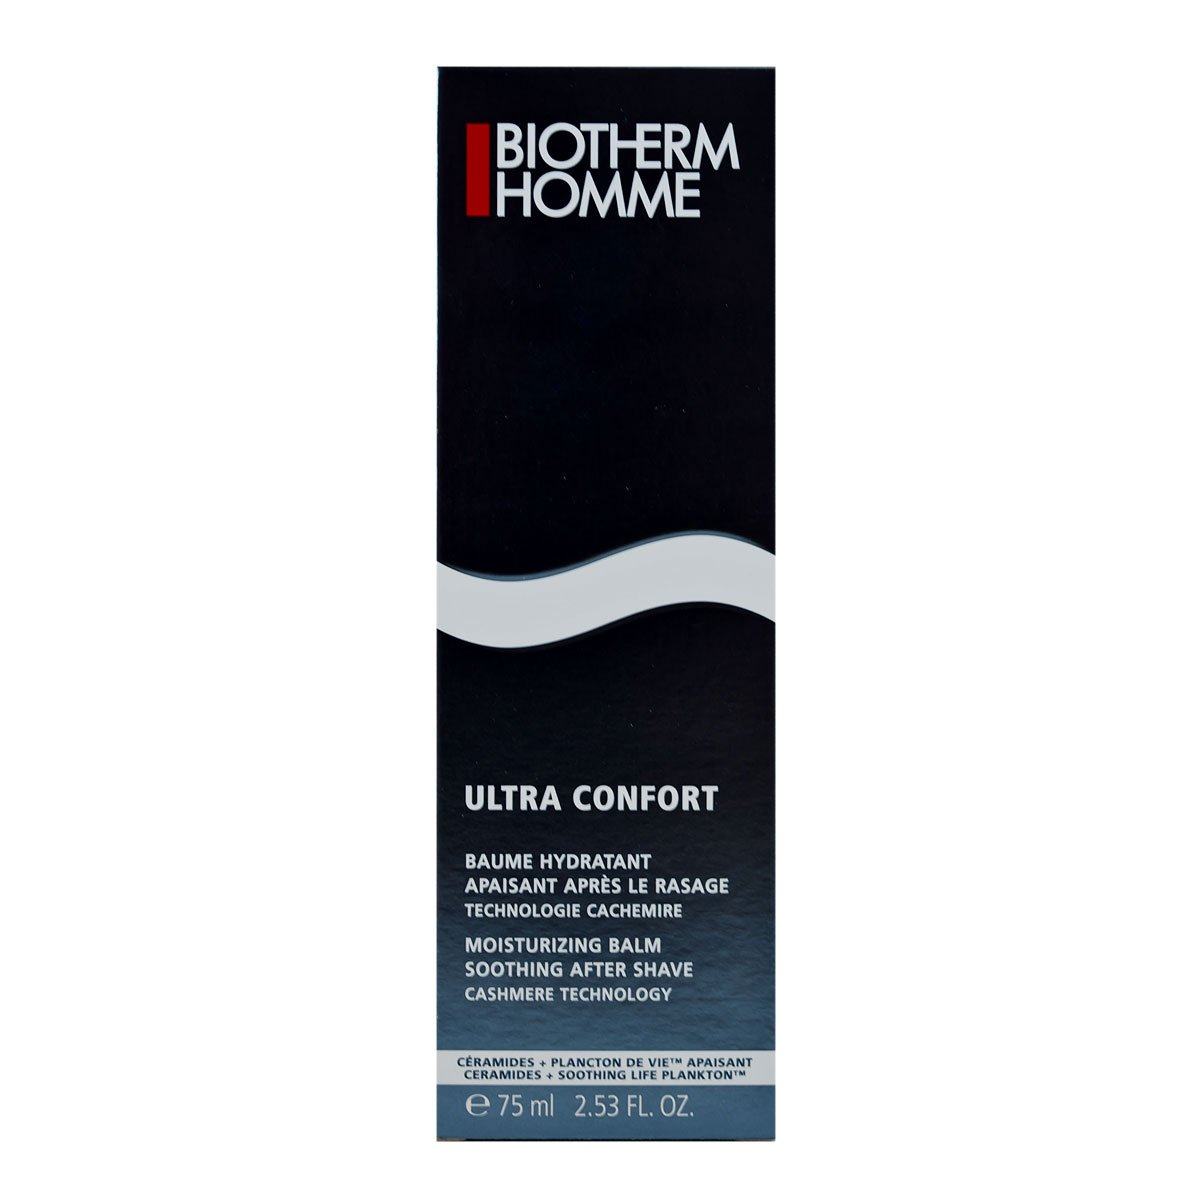 Biotherm Homme Ultra Confort Soothing After Shave Moisturizing Balm for Unisex, 2.53 Ounce BIOTHERM-227626 BIO00180